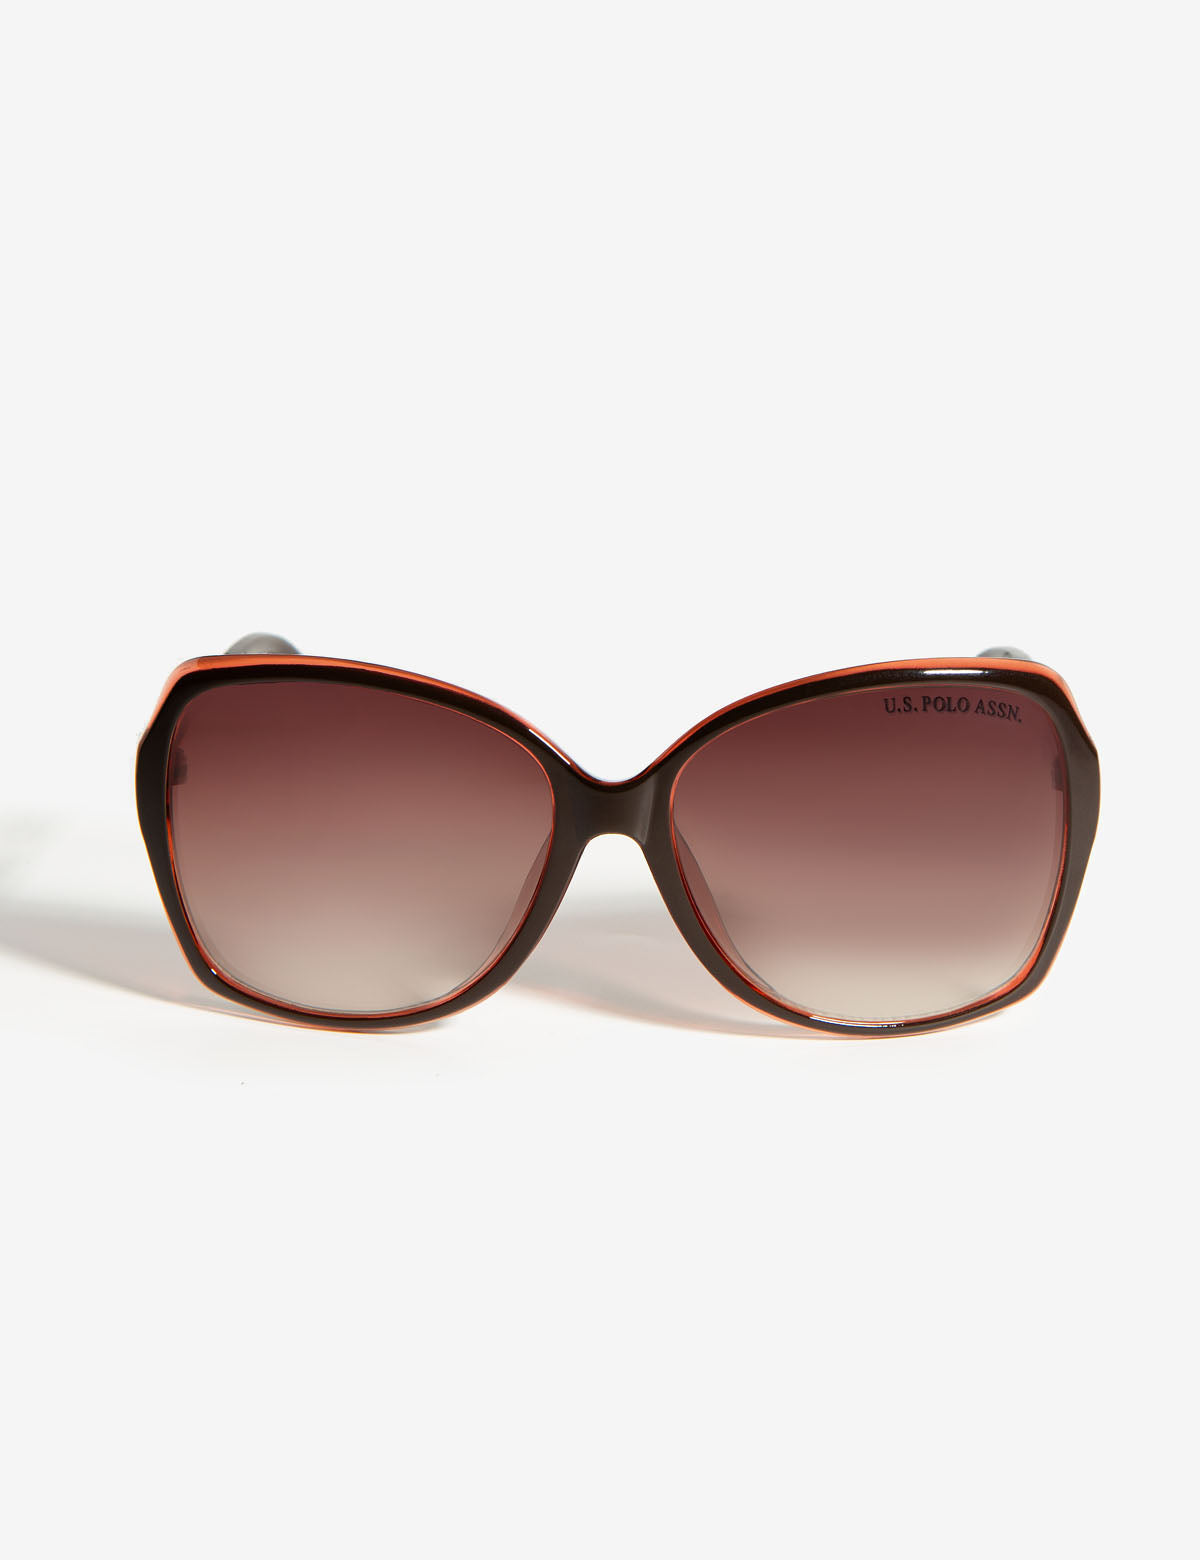 CLASSIC BUTTERFLY SUNGLASSES - U.S. Polo Assn.